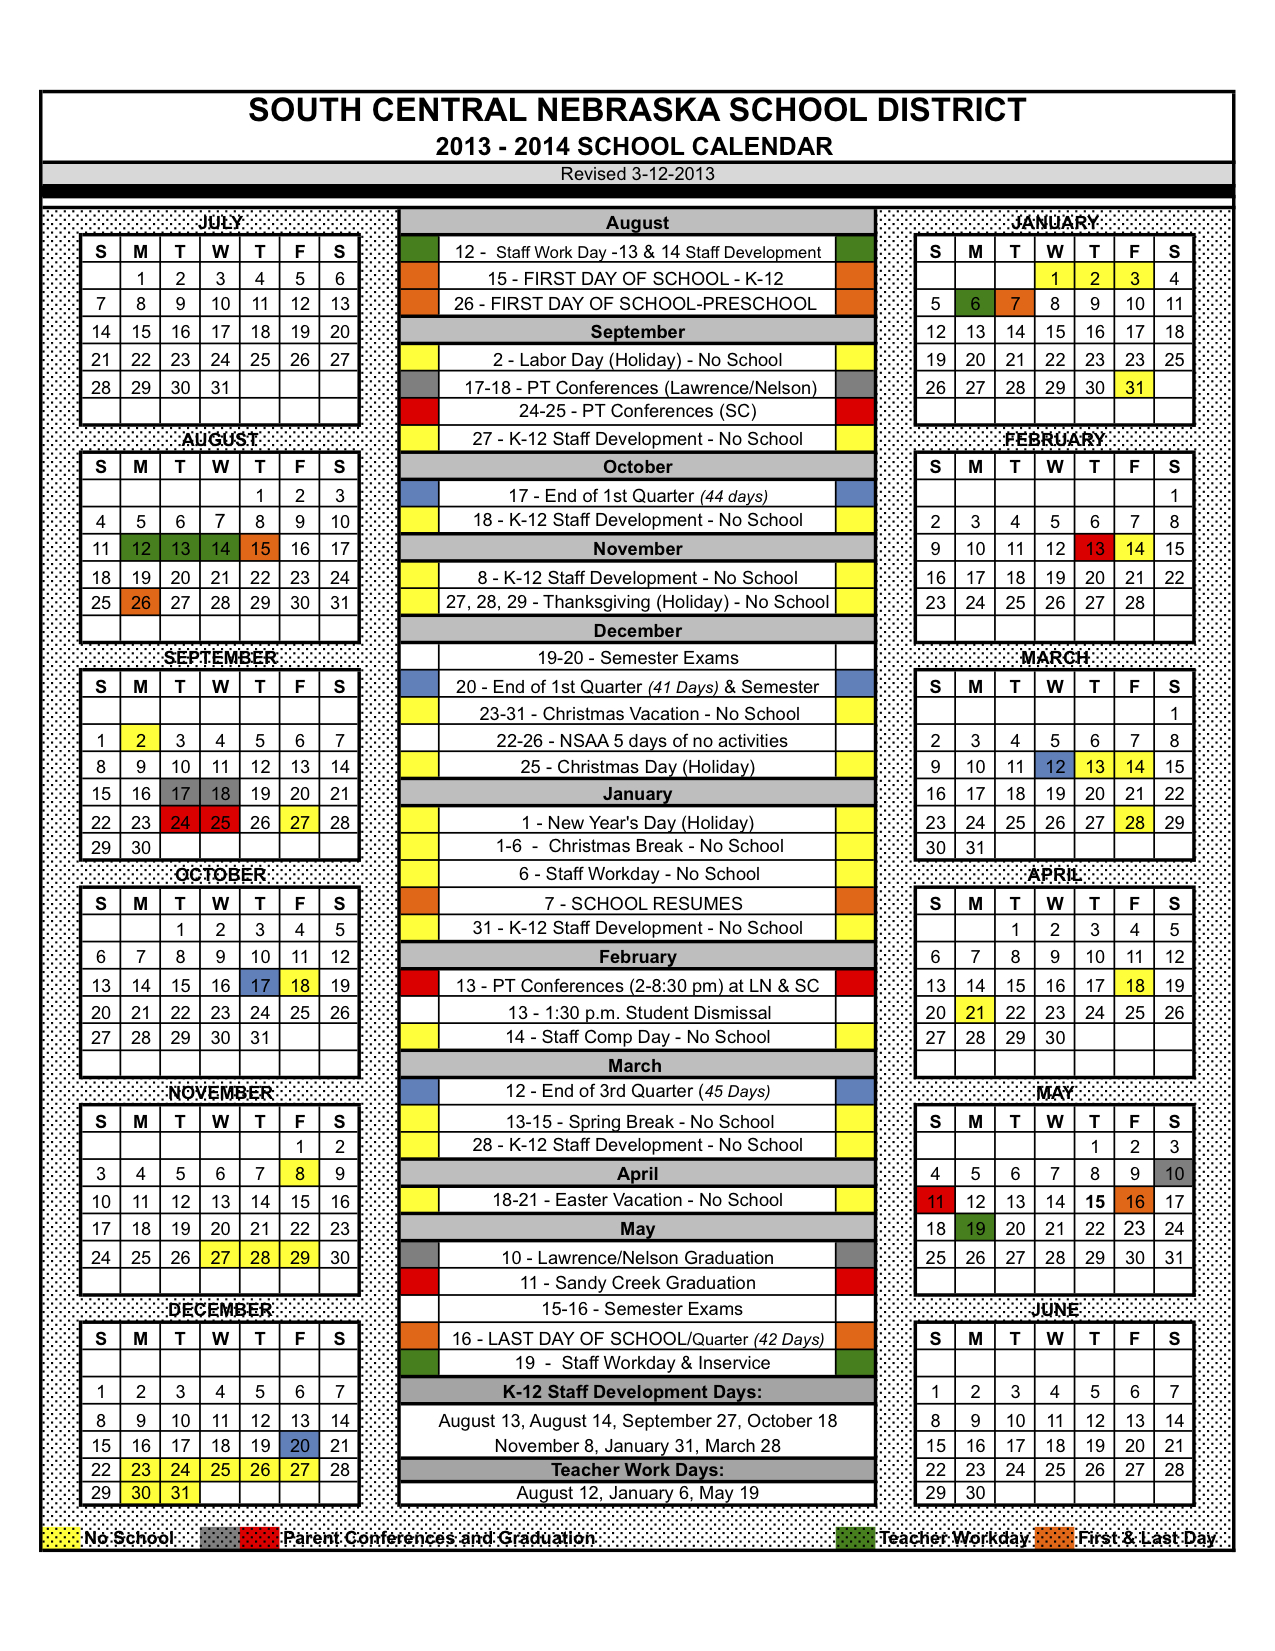 South Central USD 5 - 2013-2014 School Calendar Approved at March ...